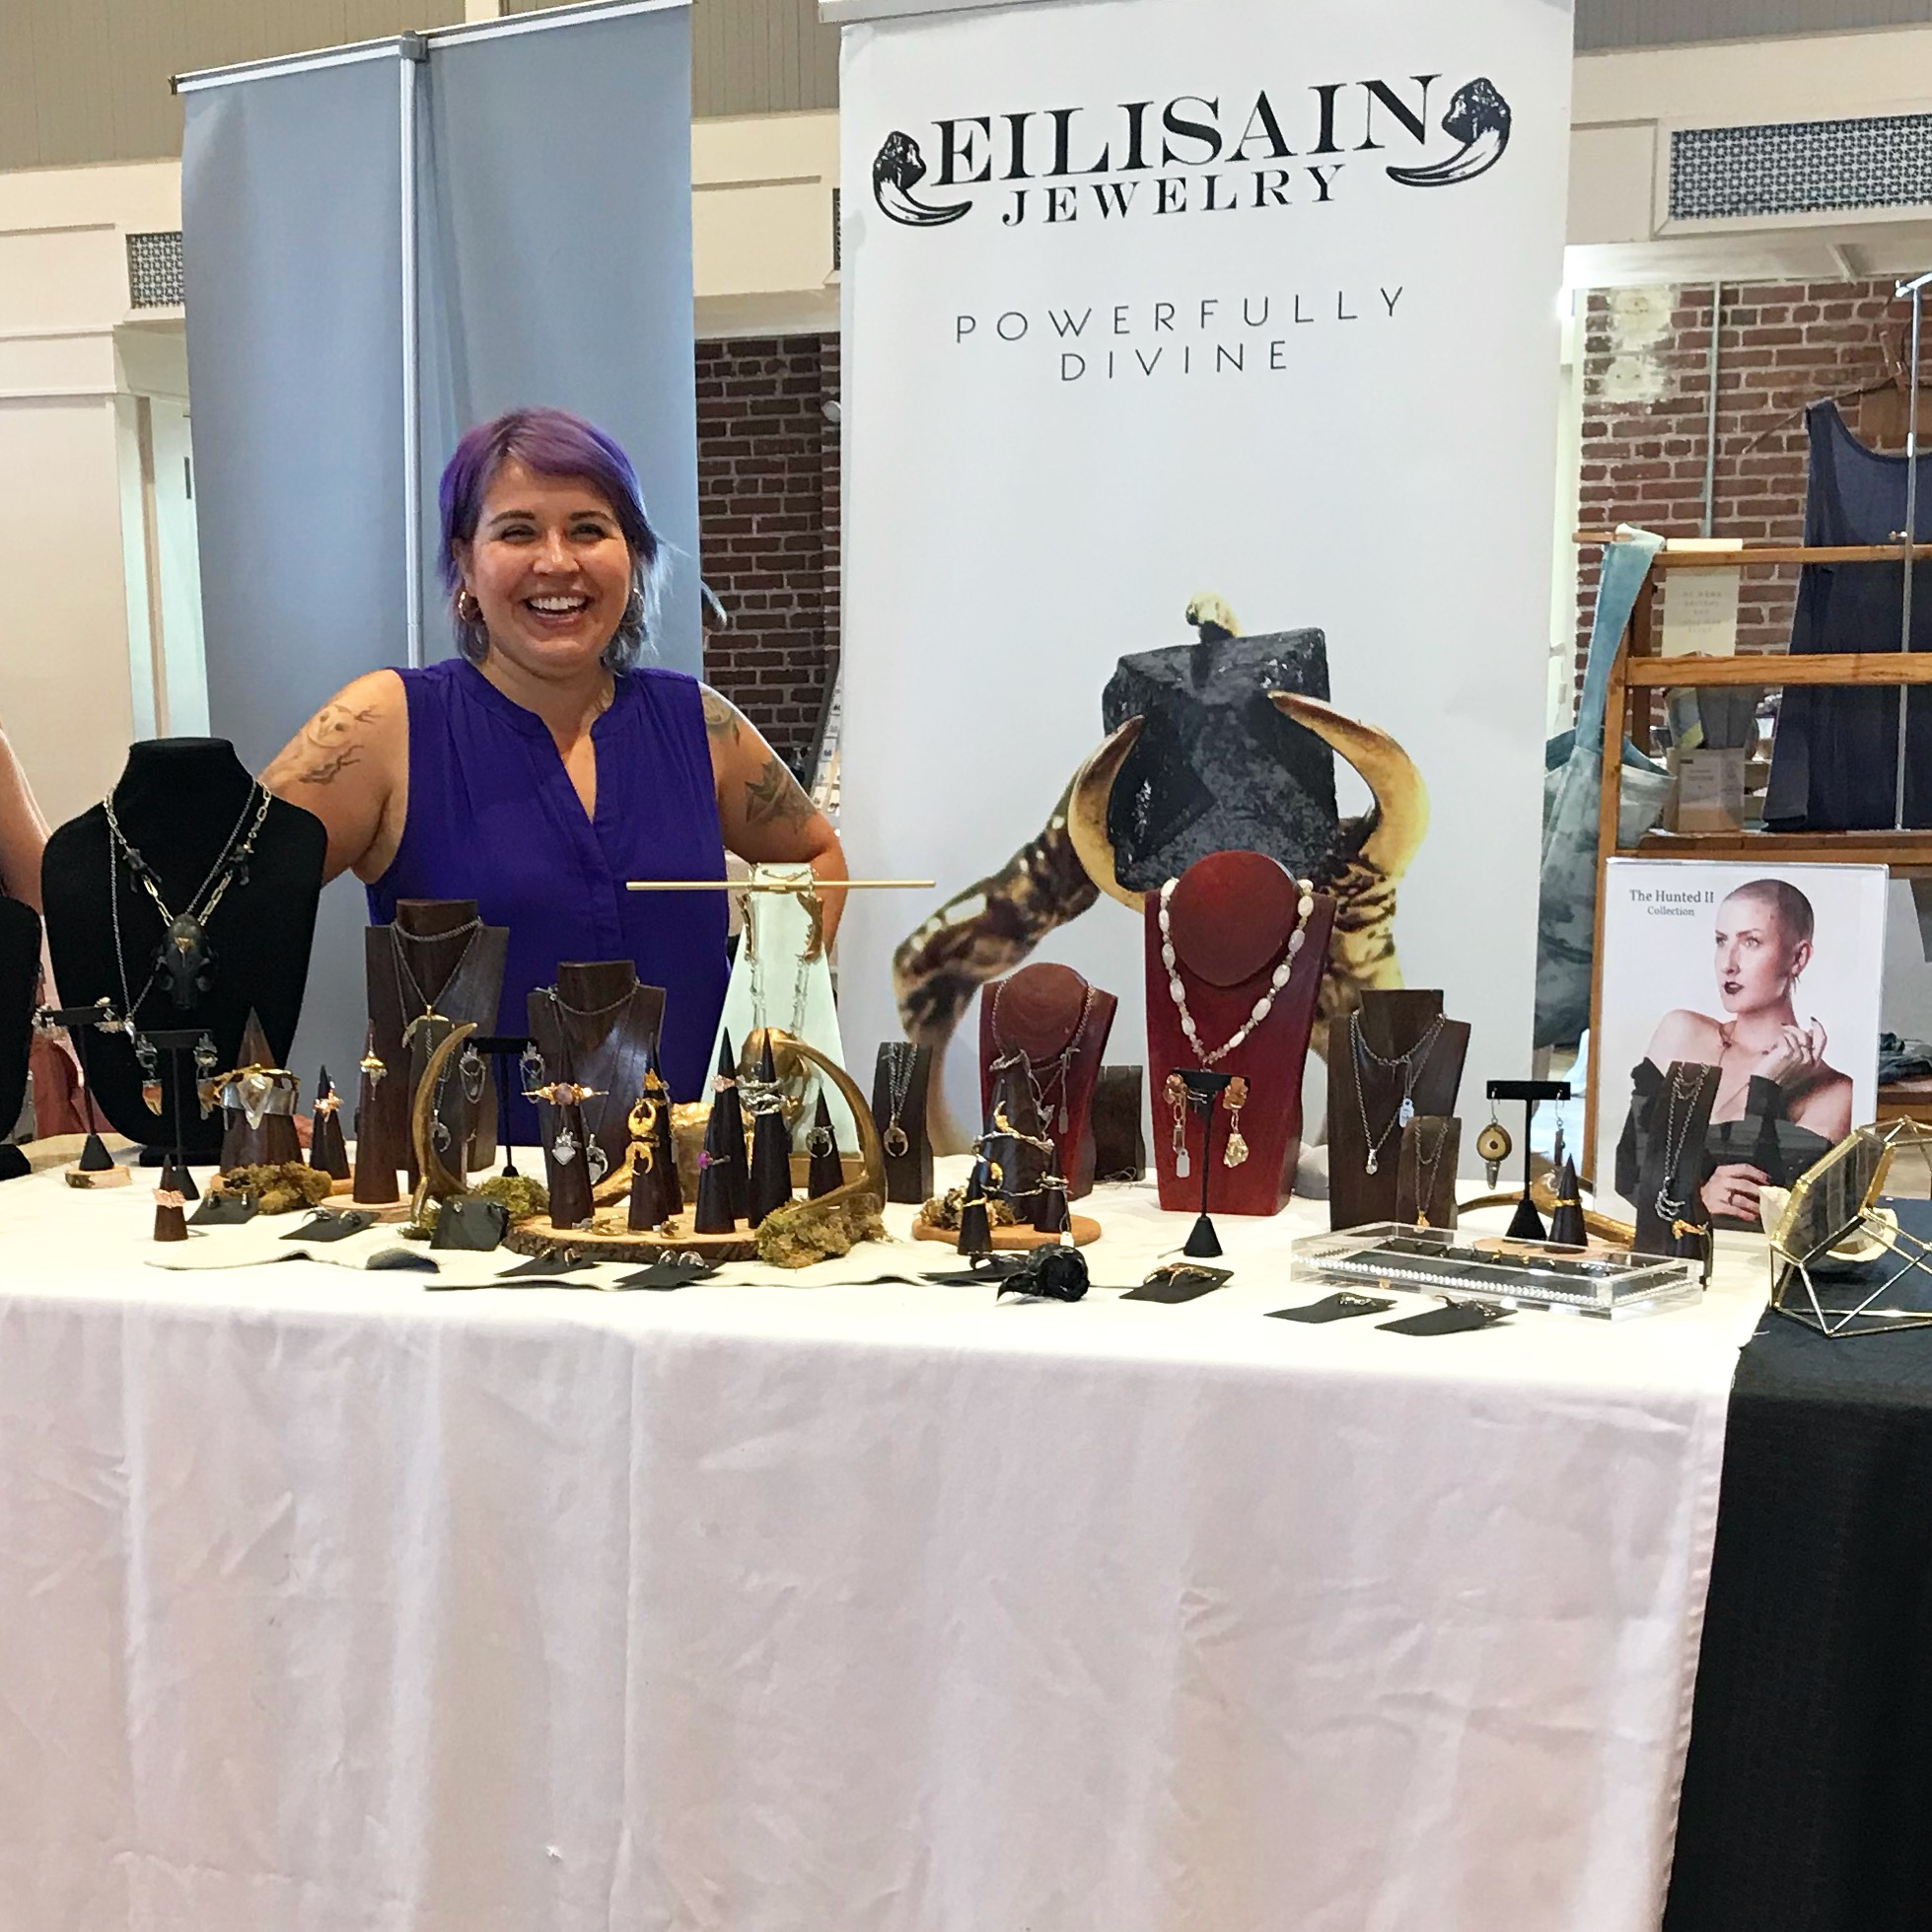 At my most recent show, the Durham Patchwork Market in Durham, NC.